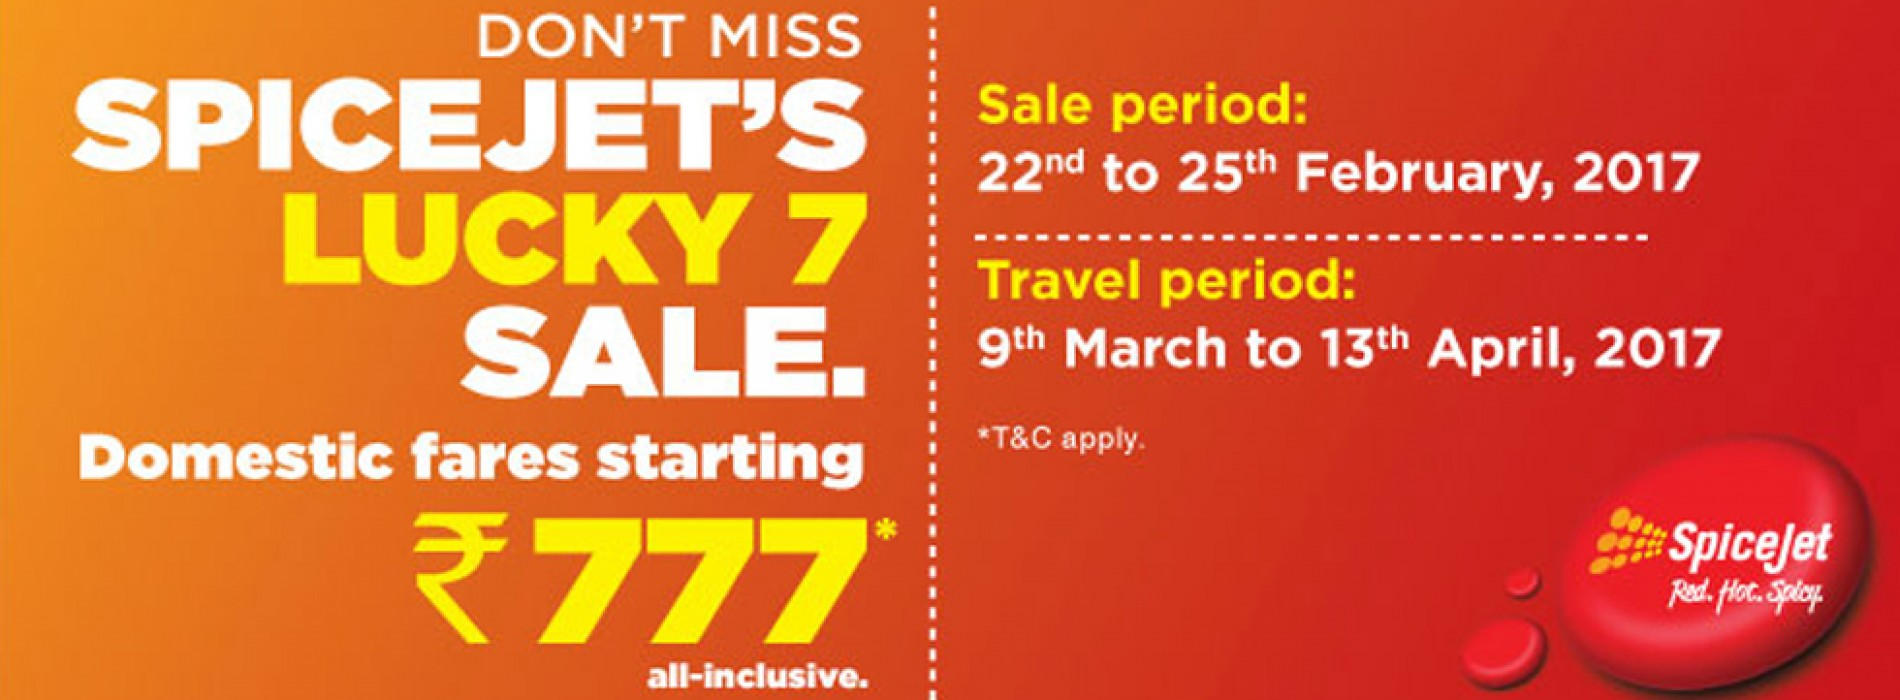 SpiceJet offers Rs. 777 All-Inclusive Fares under 'Lucky 7 Sale'